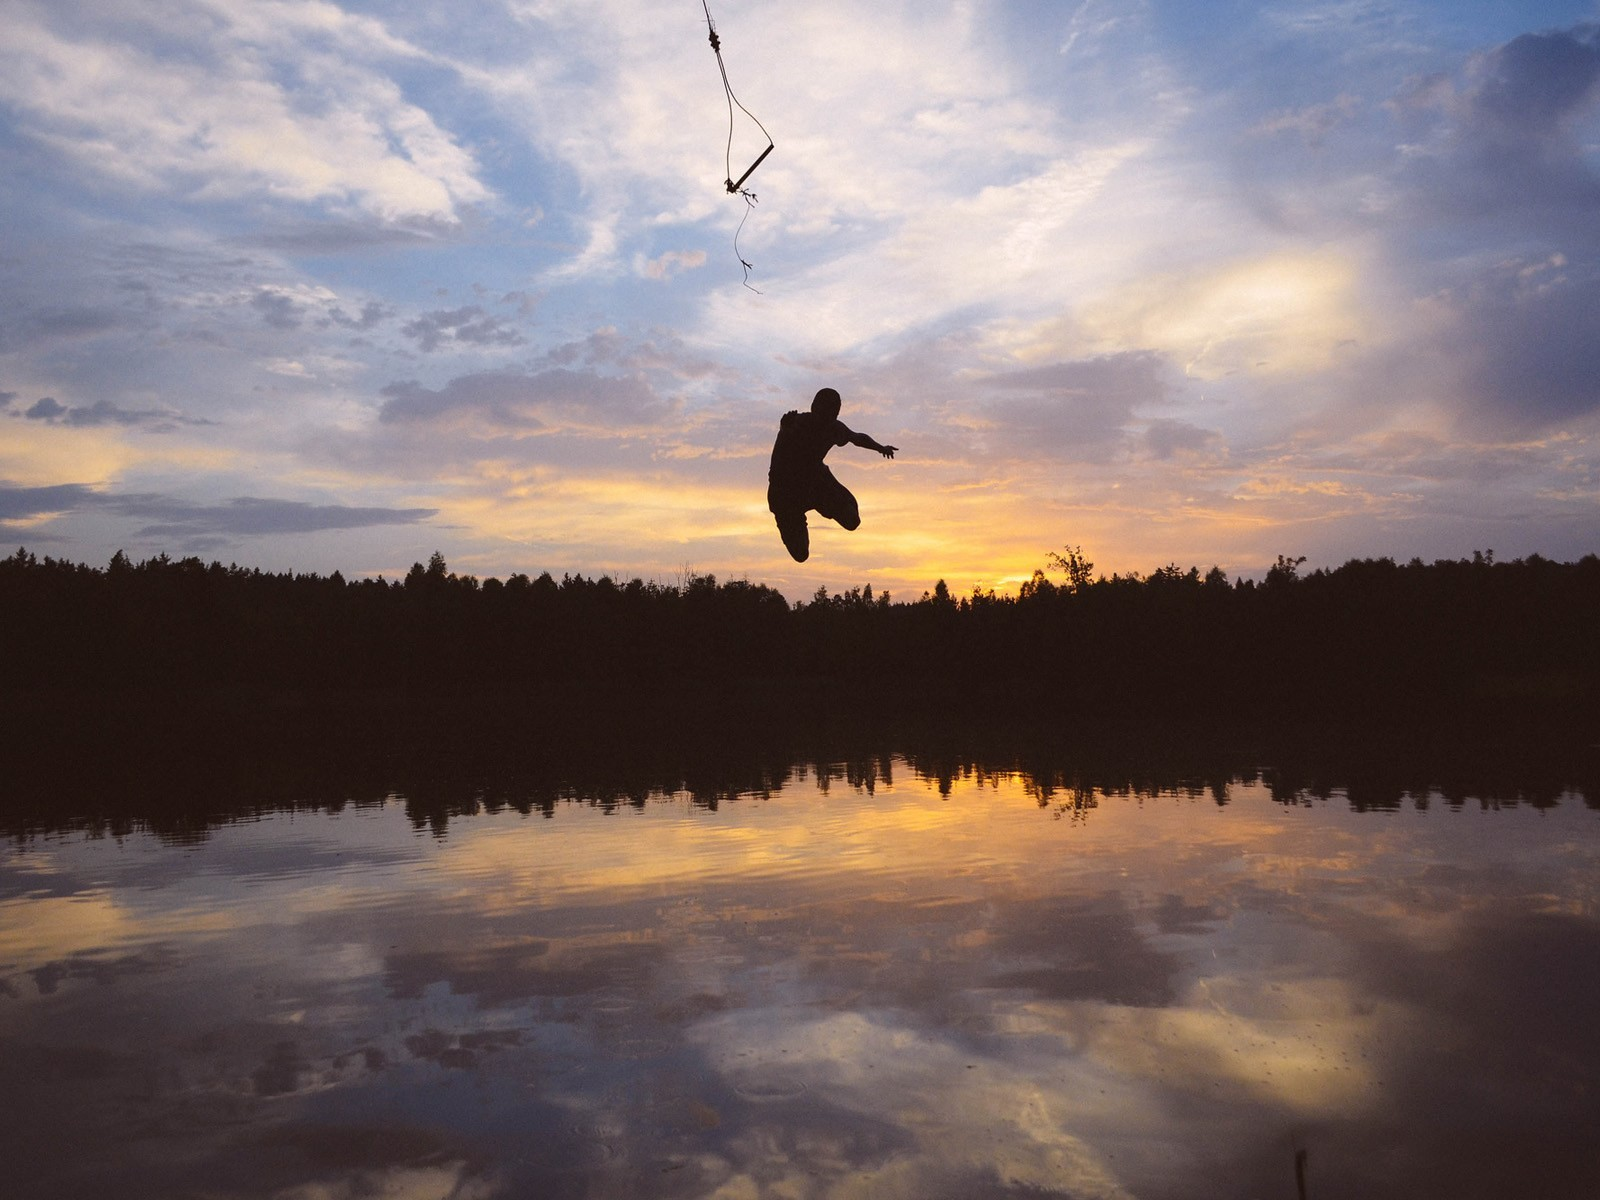 next-to-a-lake-with-a-rope-swing-in-a-forest-czech-republic-free-camping